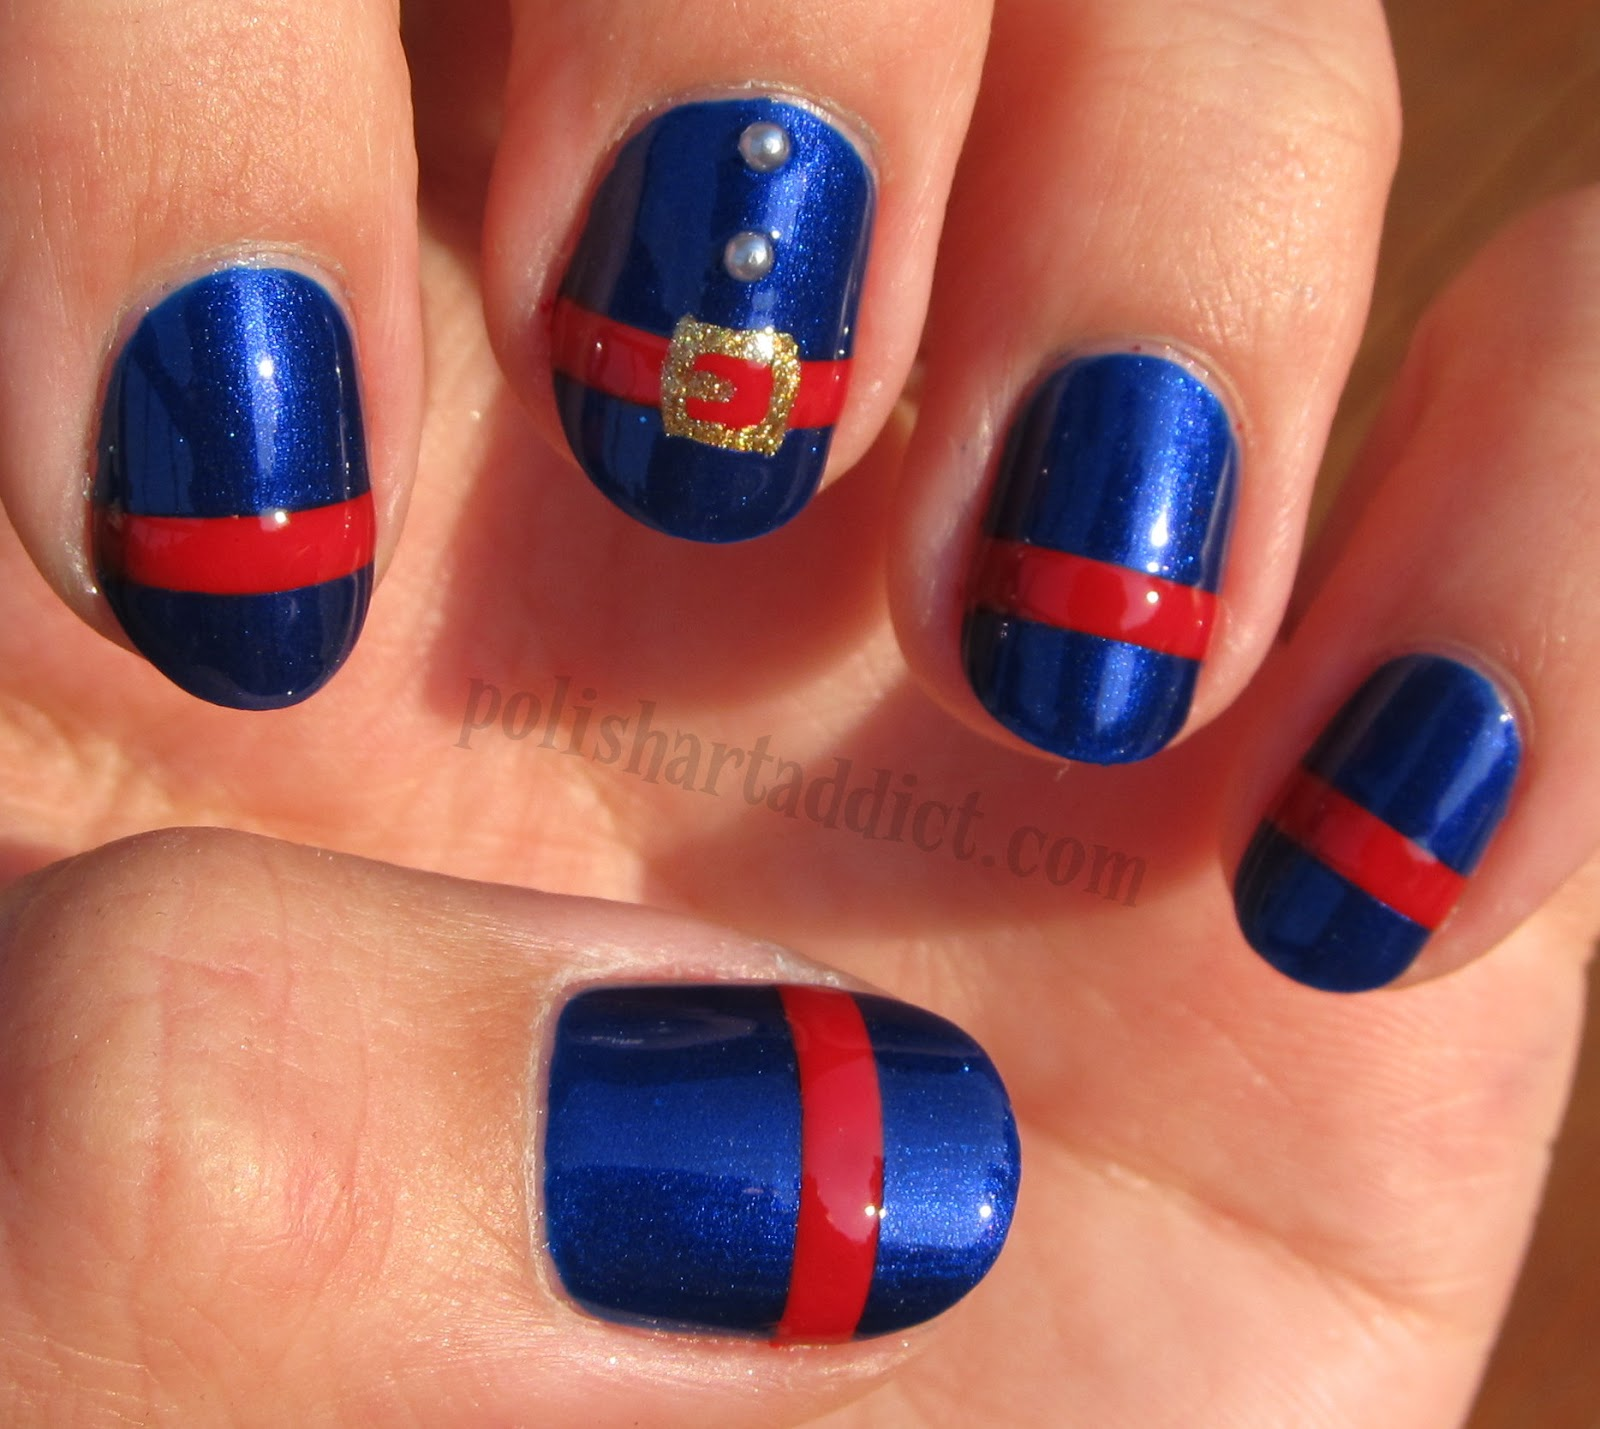 Violet Beauregarde Nail Art Tutorial